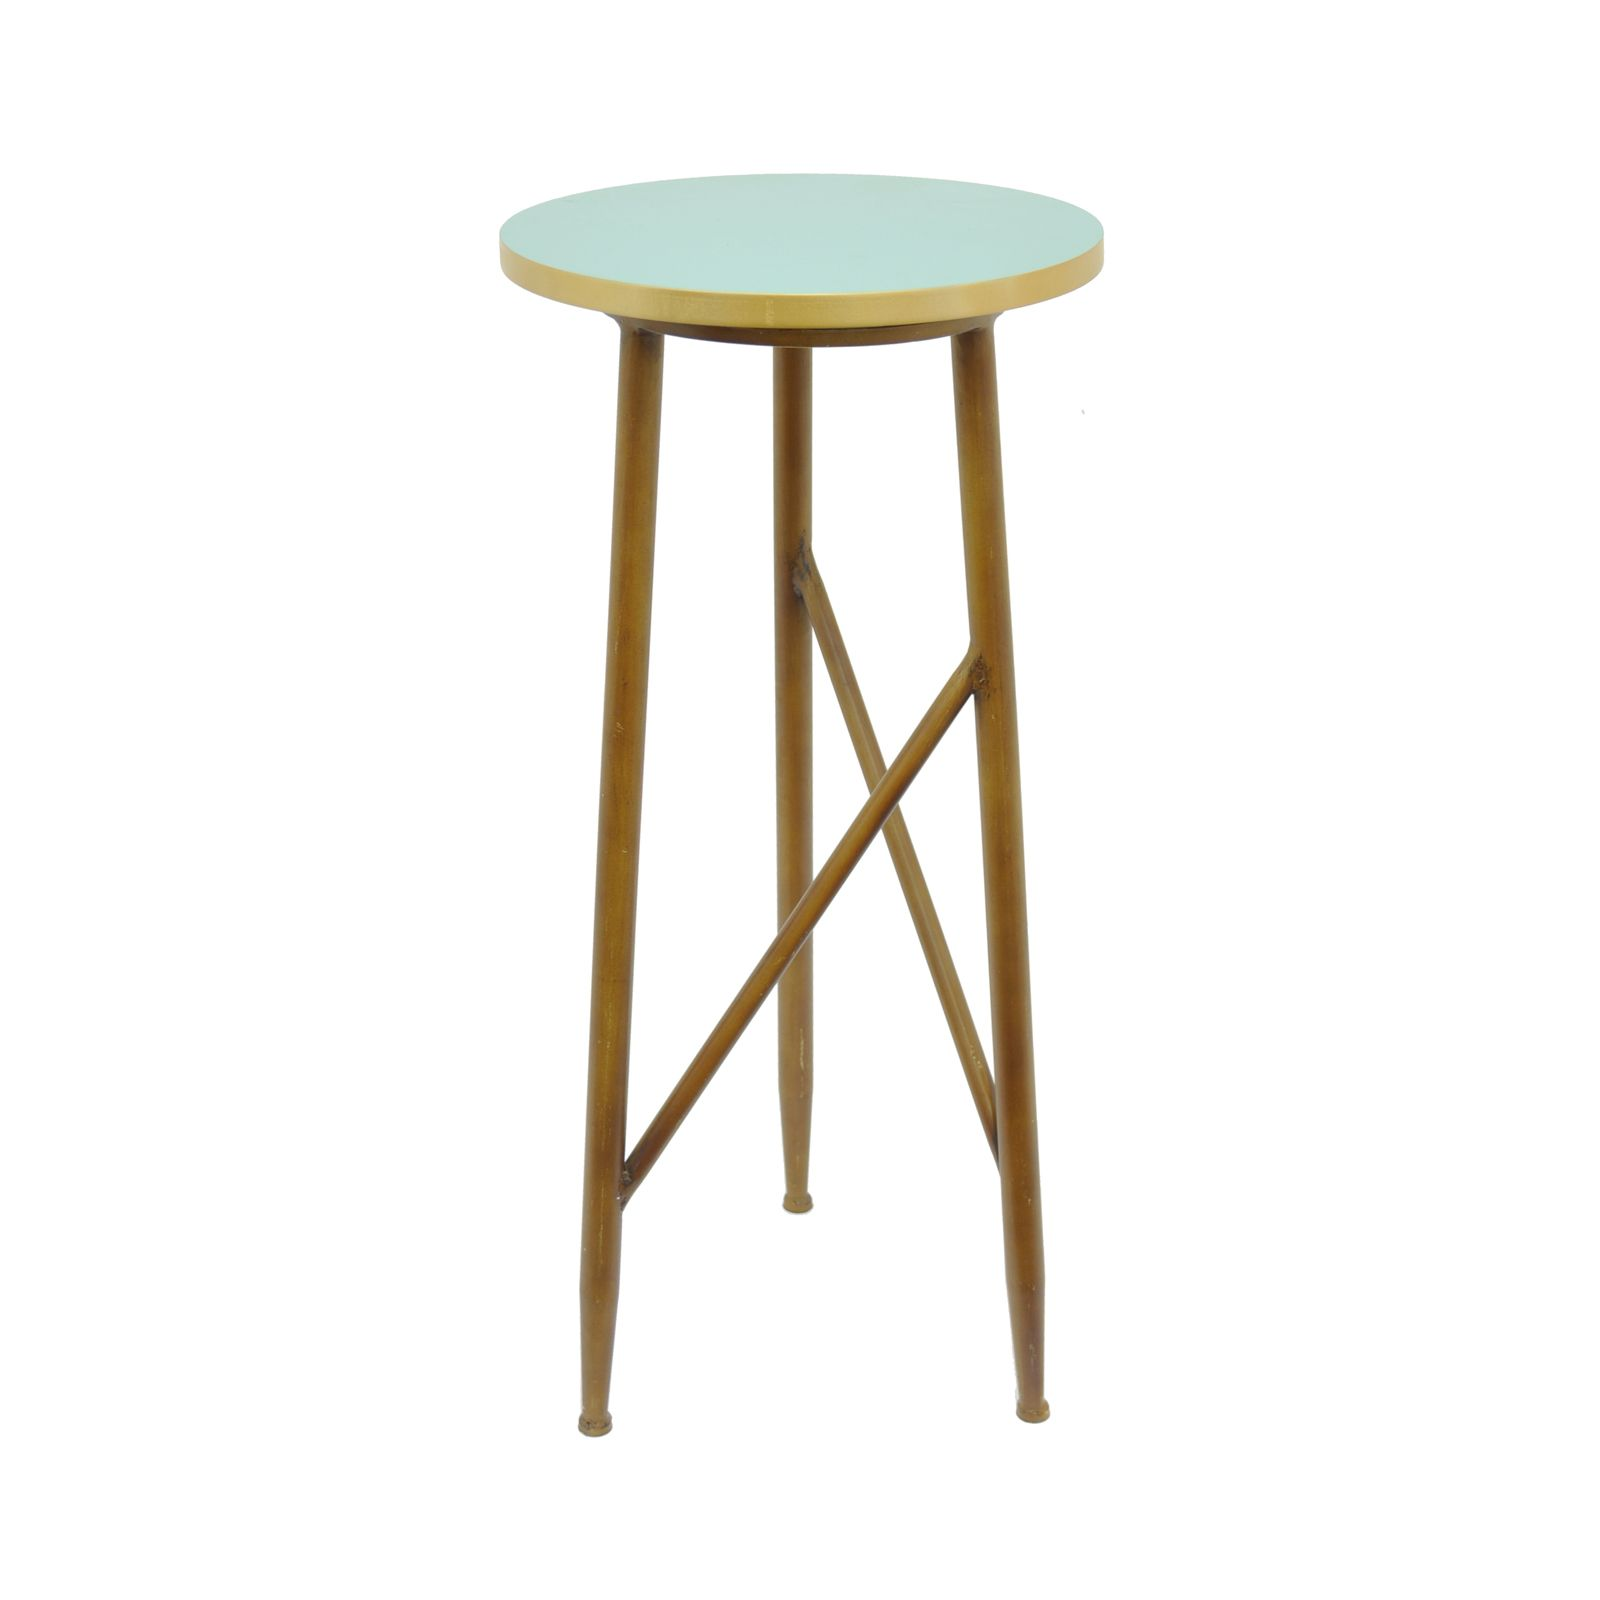 pin dot mid century modern table pedestal mint green accent cool down your interiors the round top sweet dining room sets with buffet gold home decor sage bedside wine racks for